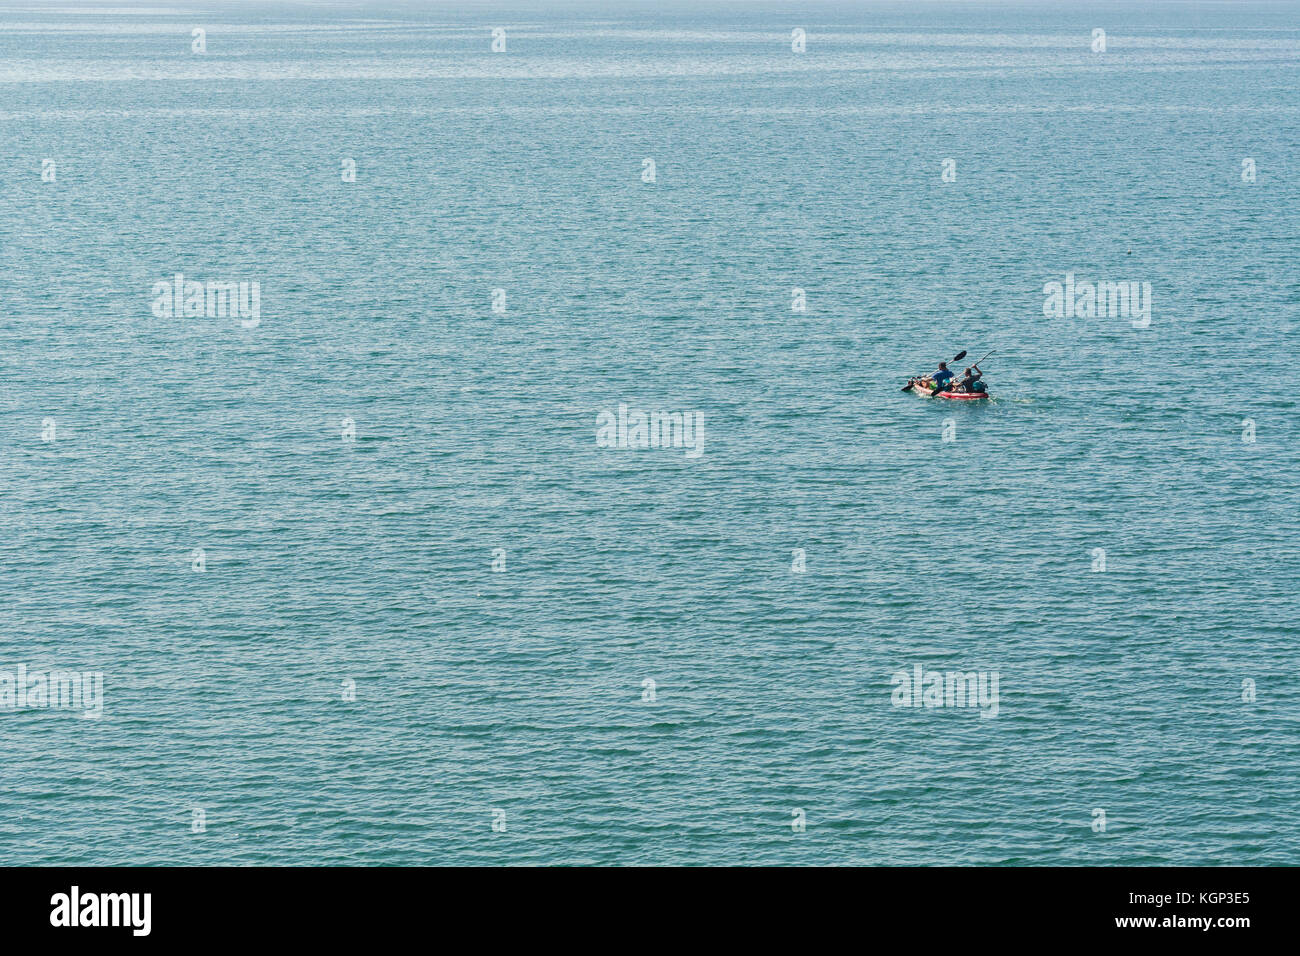 Twin seat sea kayak being paddled out to sea by two canoeists. They are heading out to line-fish for mackerel in - Stock Image